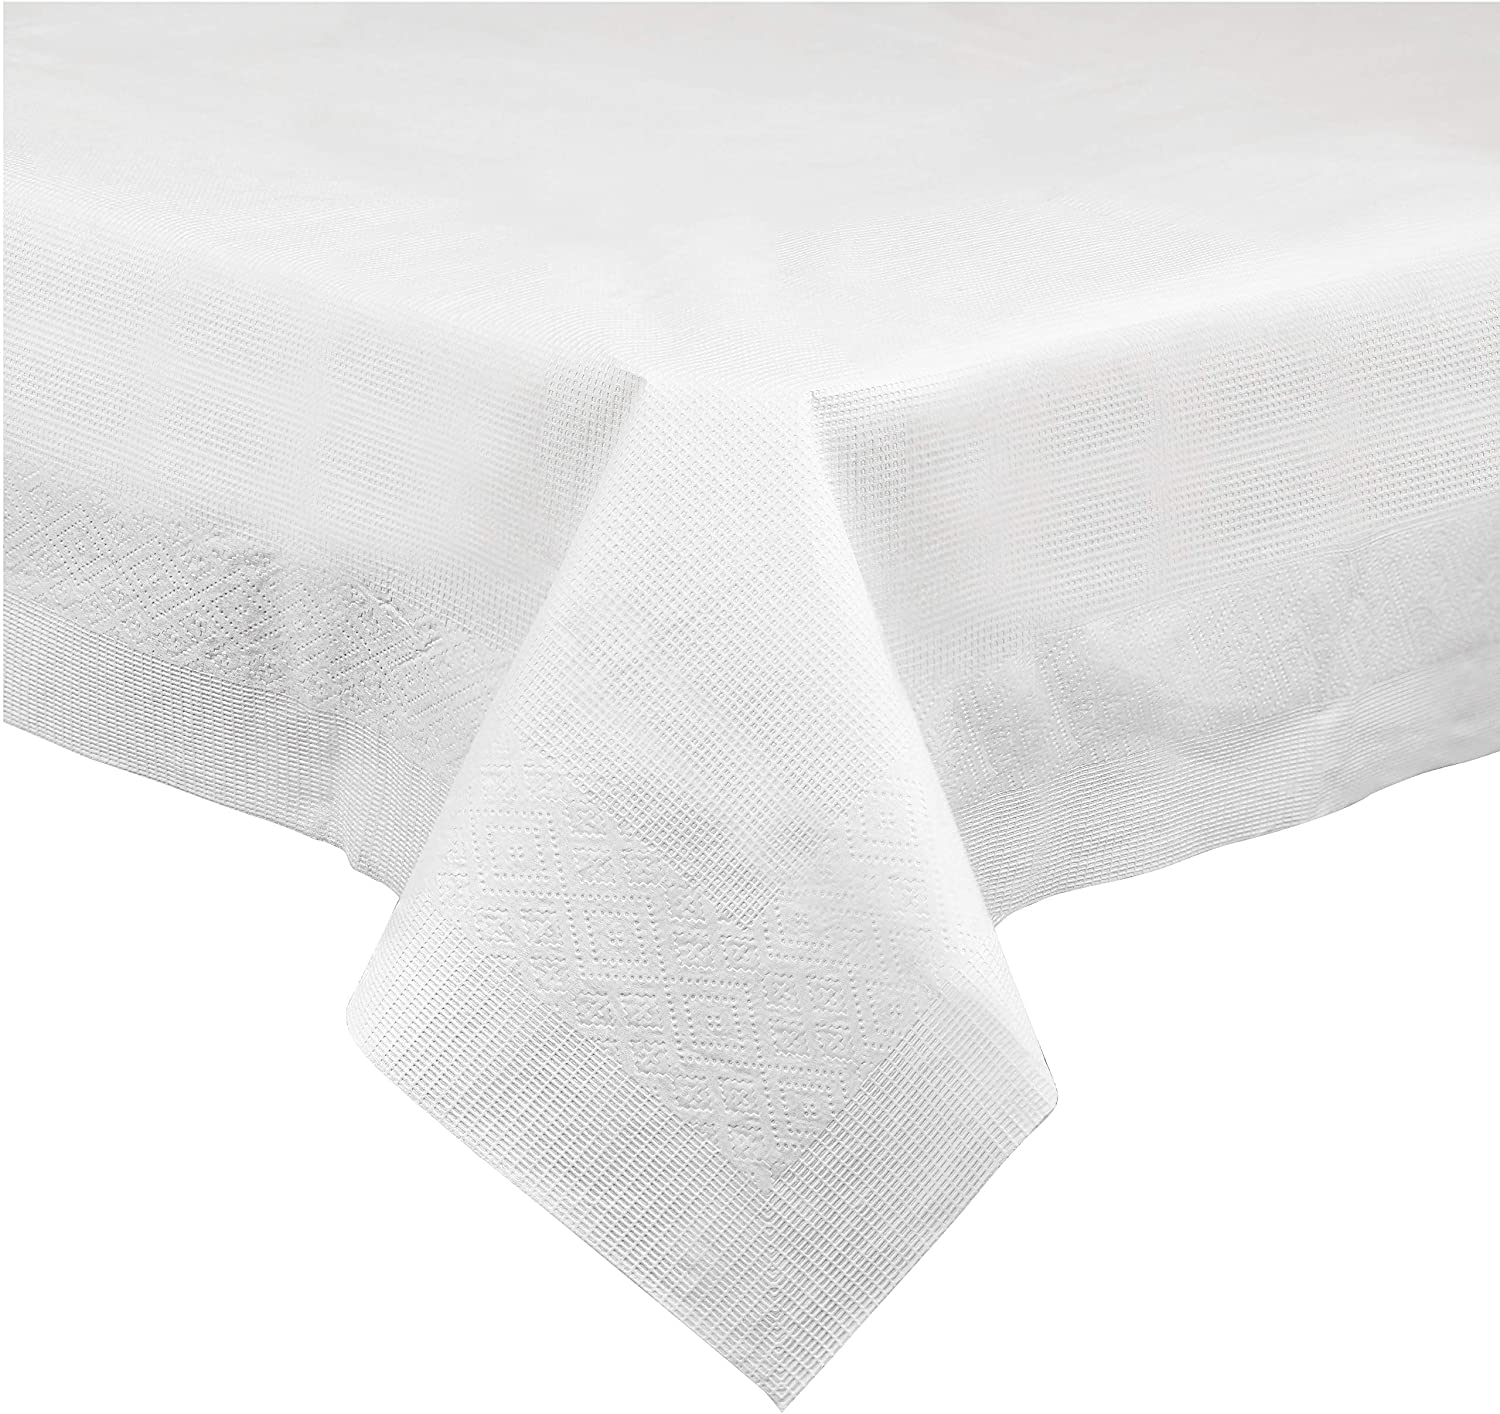 Disposable 3 Ply Paper & Plastic Tablecloth Absorbent, Waterproof, White Table Cover for Rectangle Tables fits 6-8 Foot Tables Size: 54'' X 108'' Pack of 5